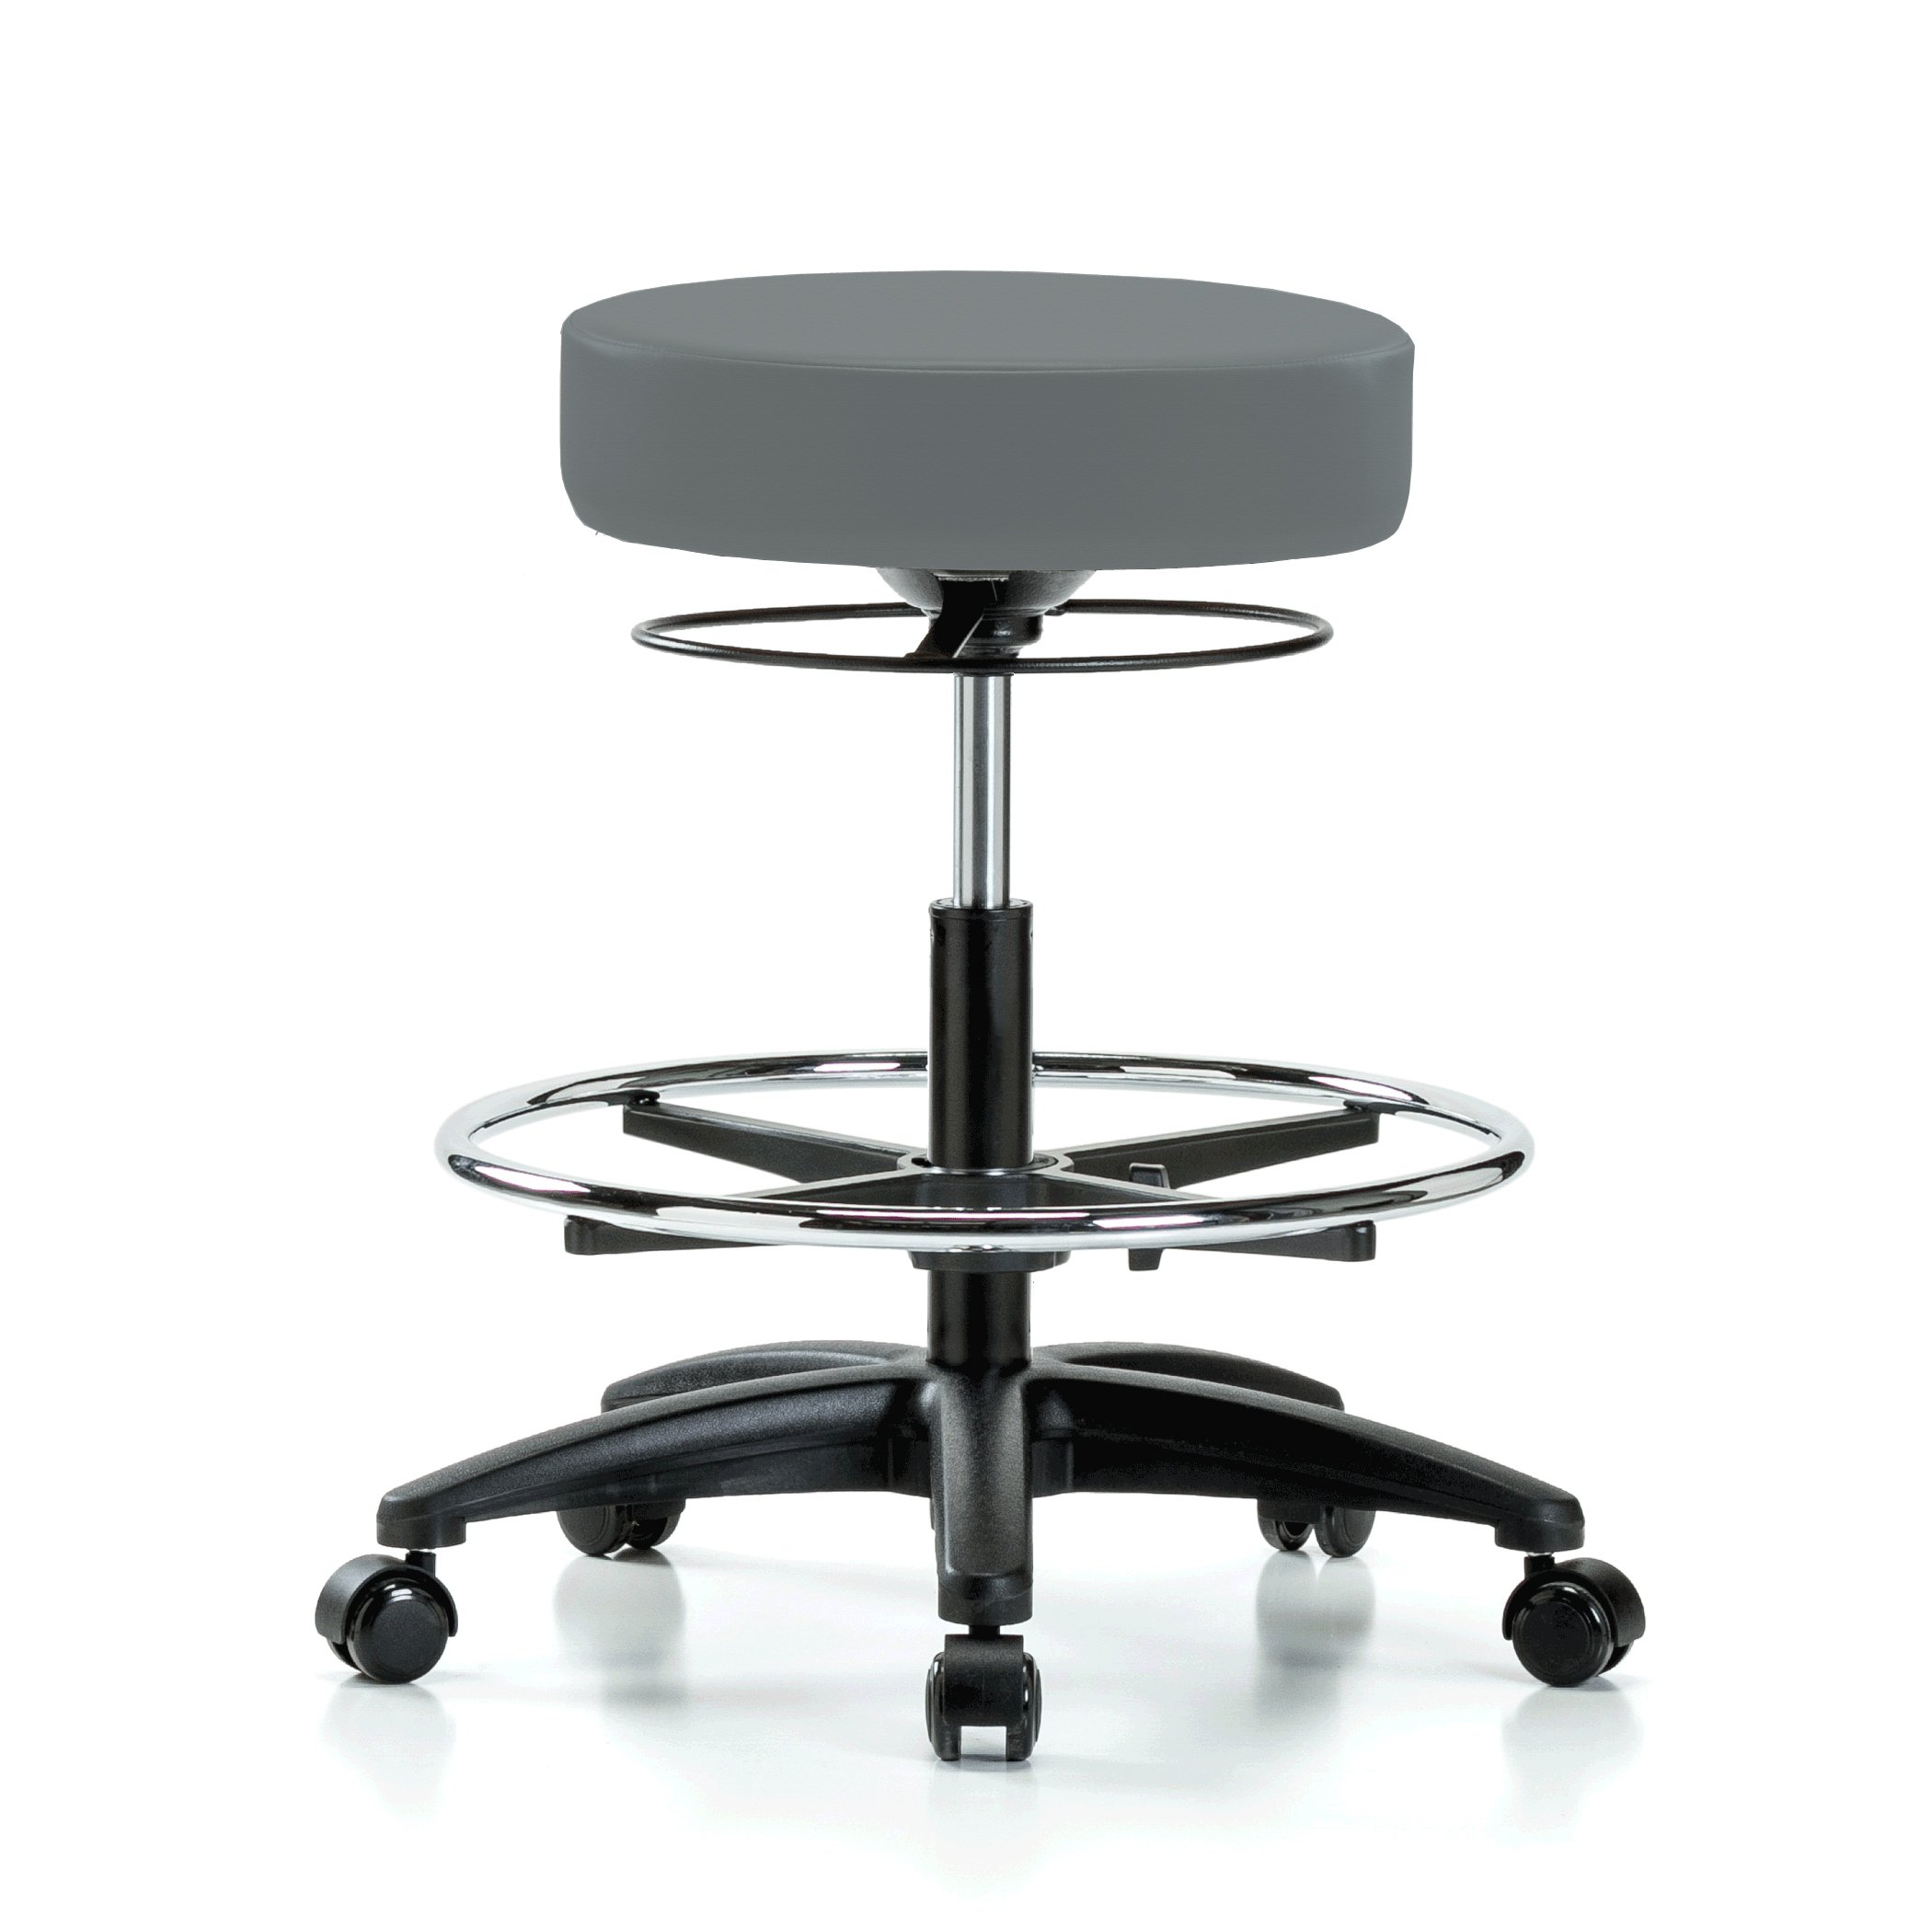 Perch Stella Rolling Adjustable Stool with Footring Medical Salon Spa Massage Tattoo Office 21'' - 28.5'' (Soft Floor Casters/Cinder Fabric)